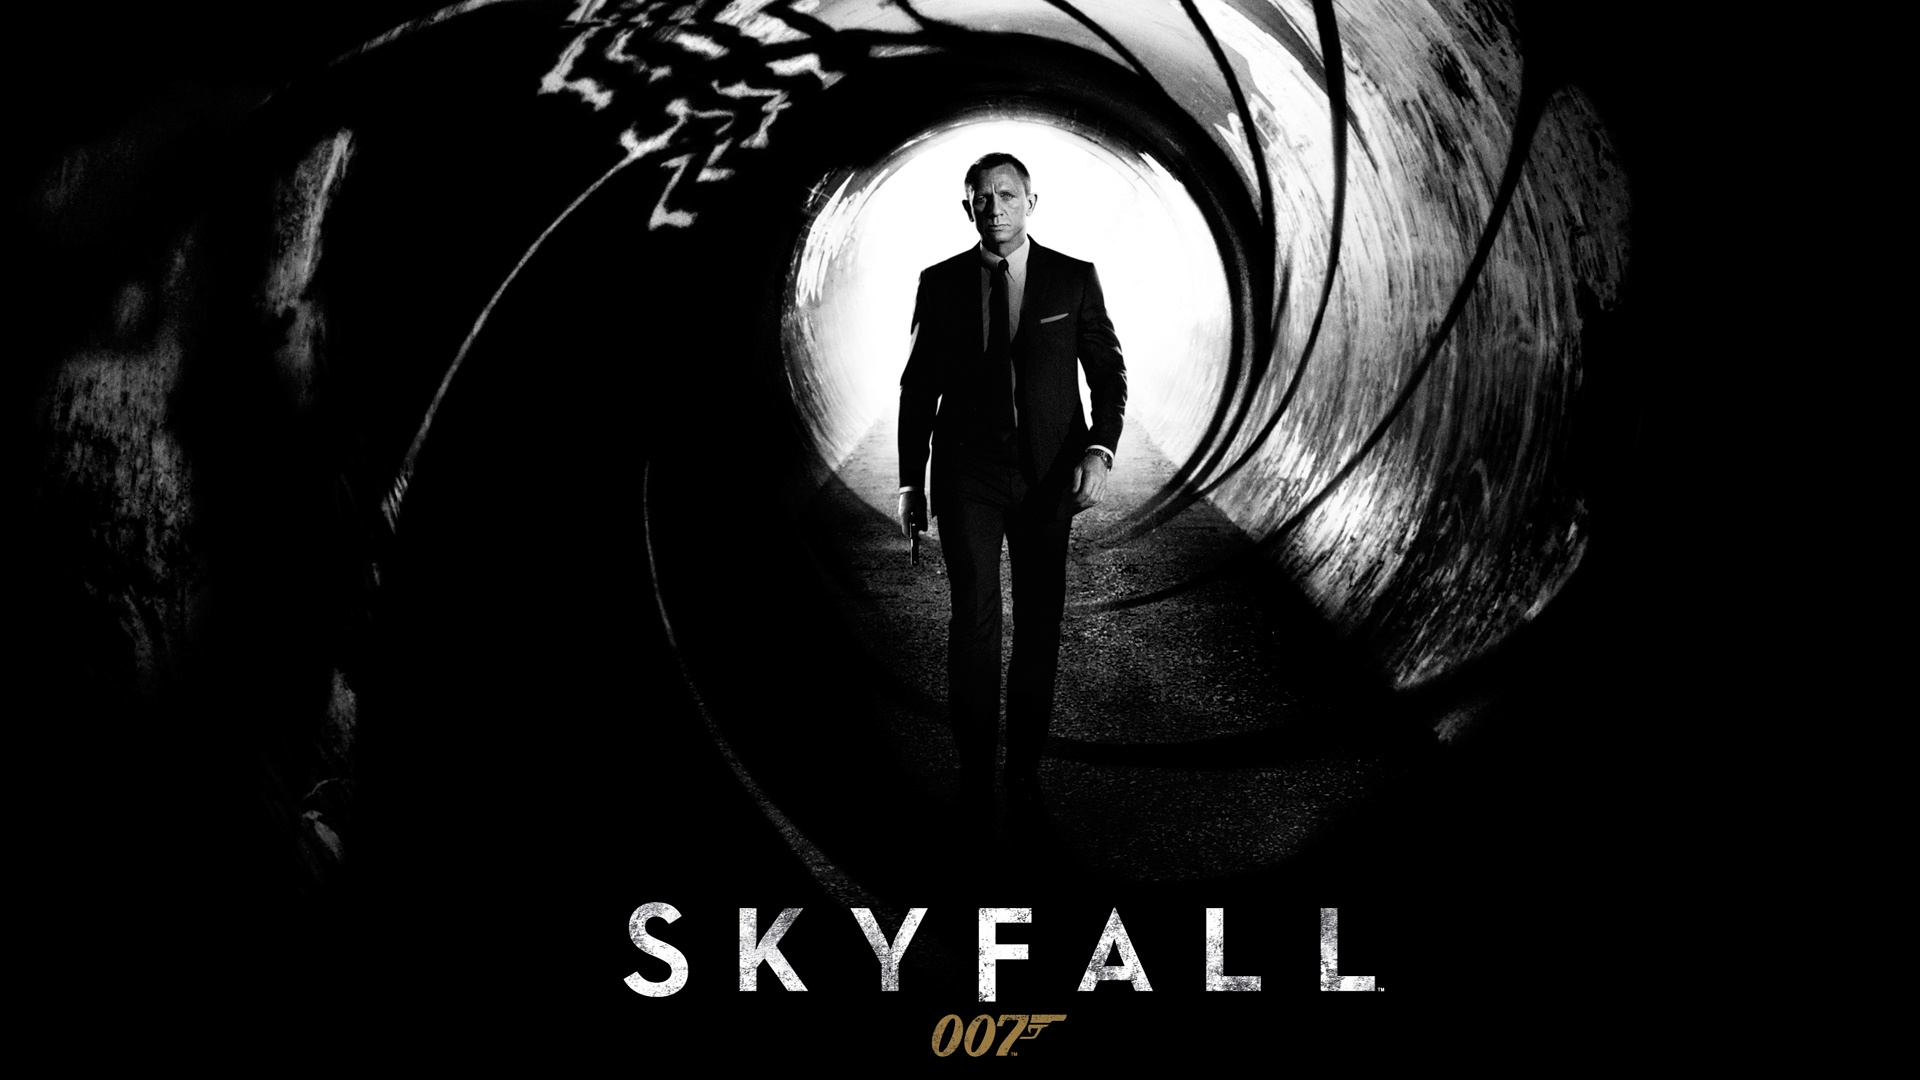 Skyfall full hd wallpaper and background image 1920x1080 - James bond images hd ...